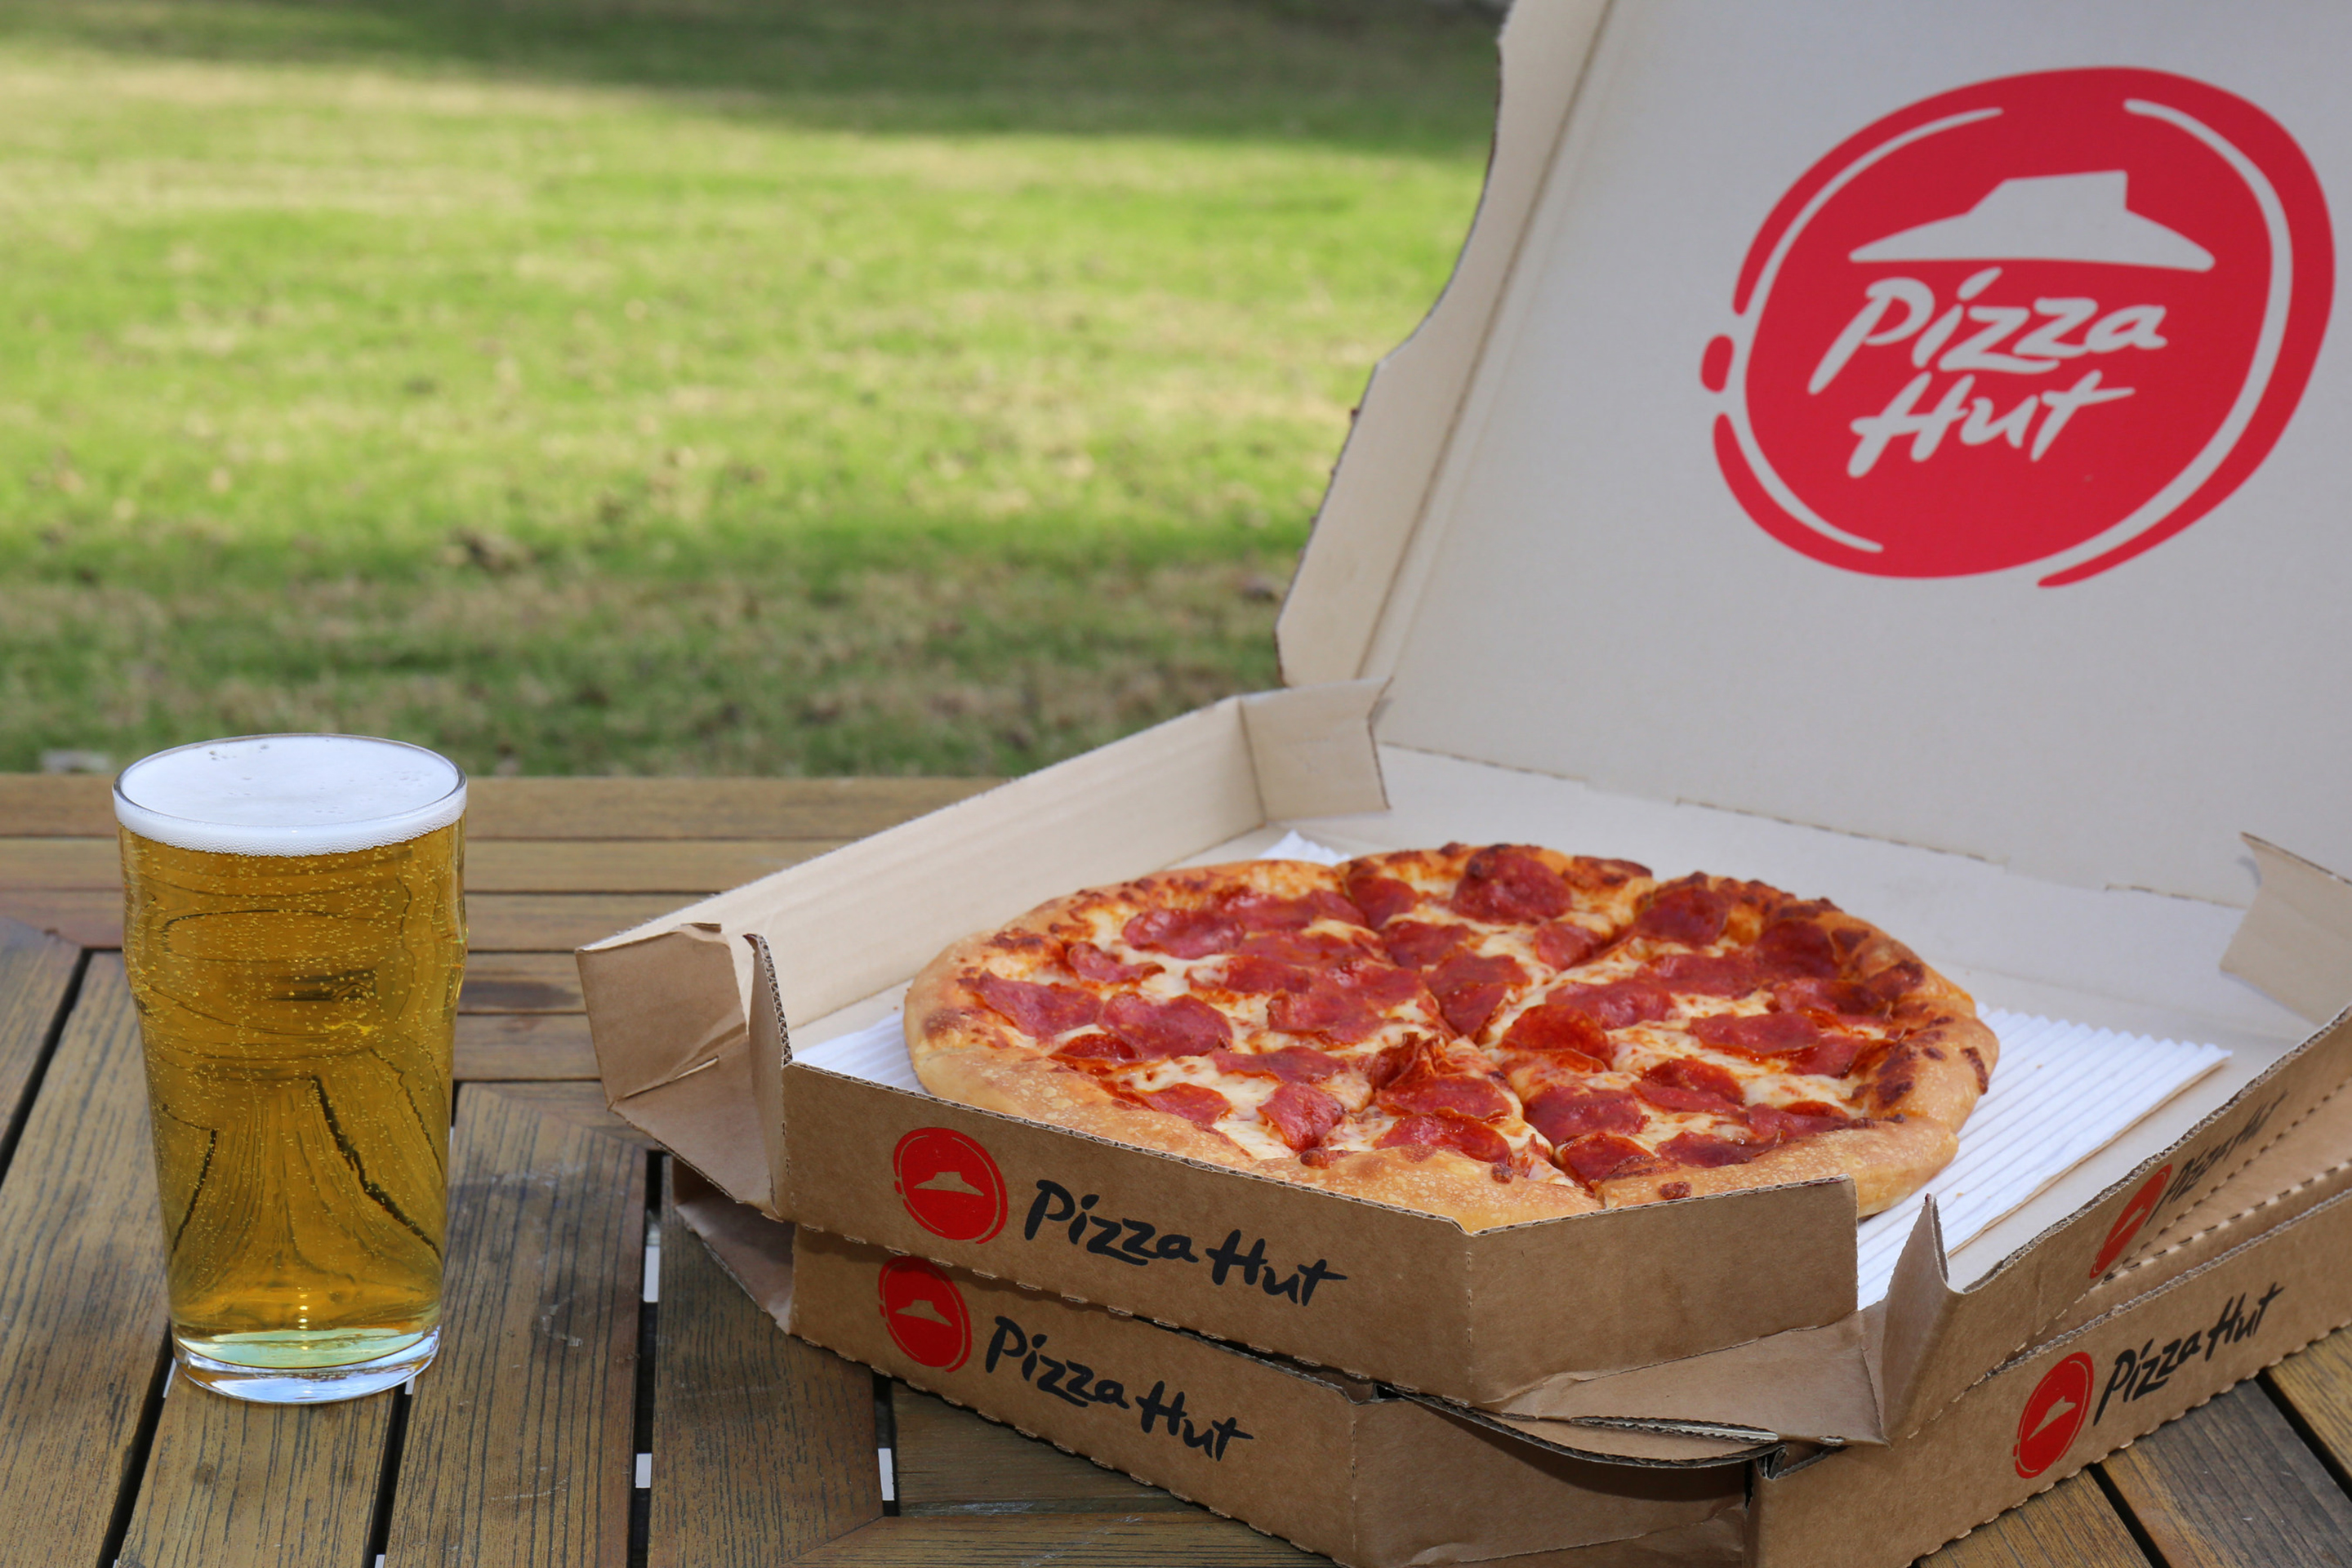 Pizza Hut expands beer delivery just in time for Super Bowl LIII.